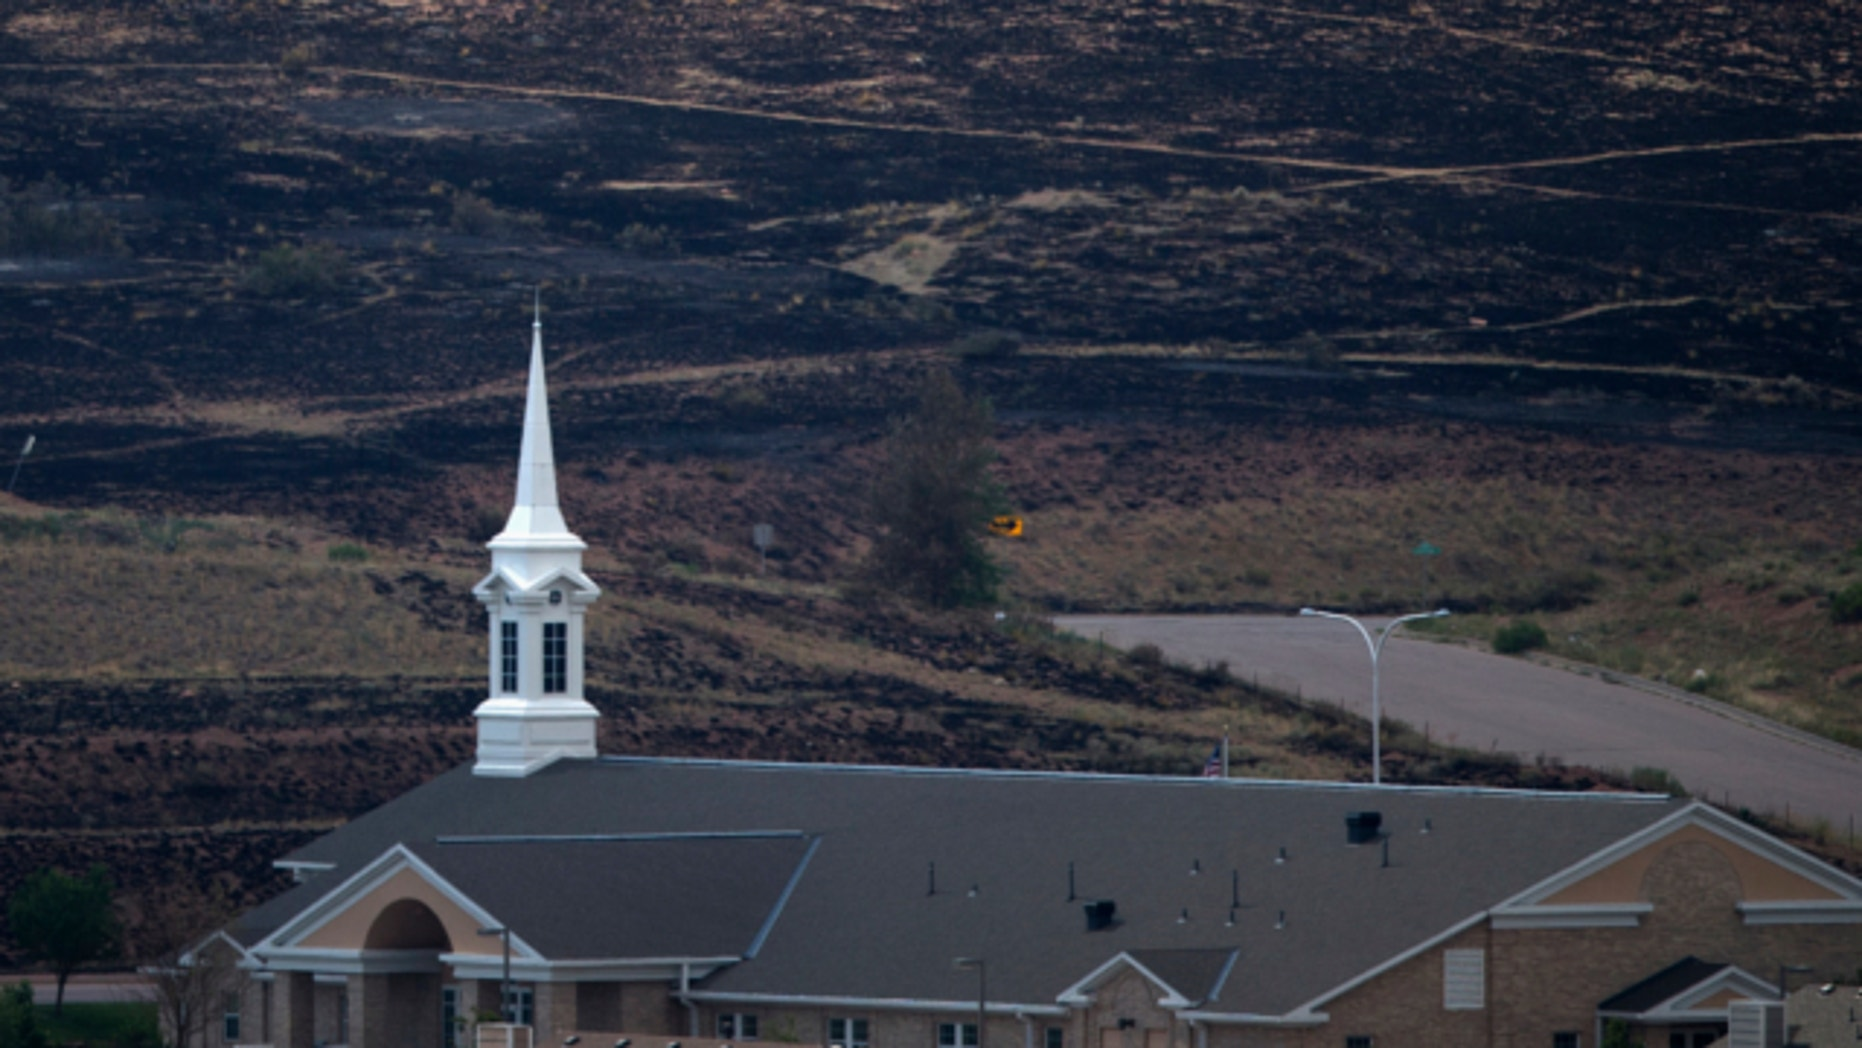 FILE: June 30, 2012. A church, which survived the Waldo Canyon Fire, is backdropped by a charred hillside in Colorado Springs, Colorado.